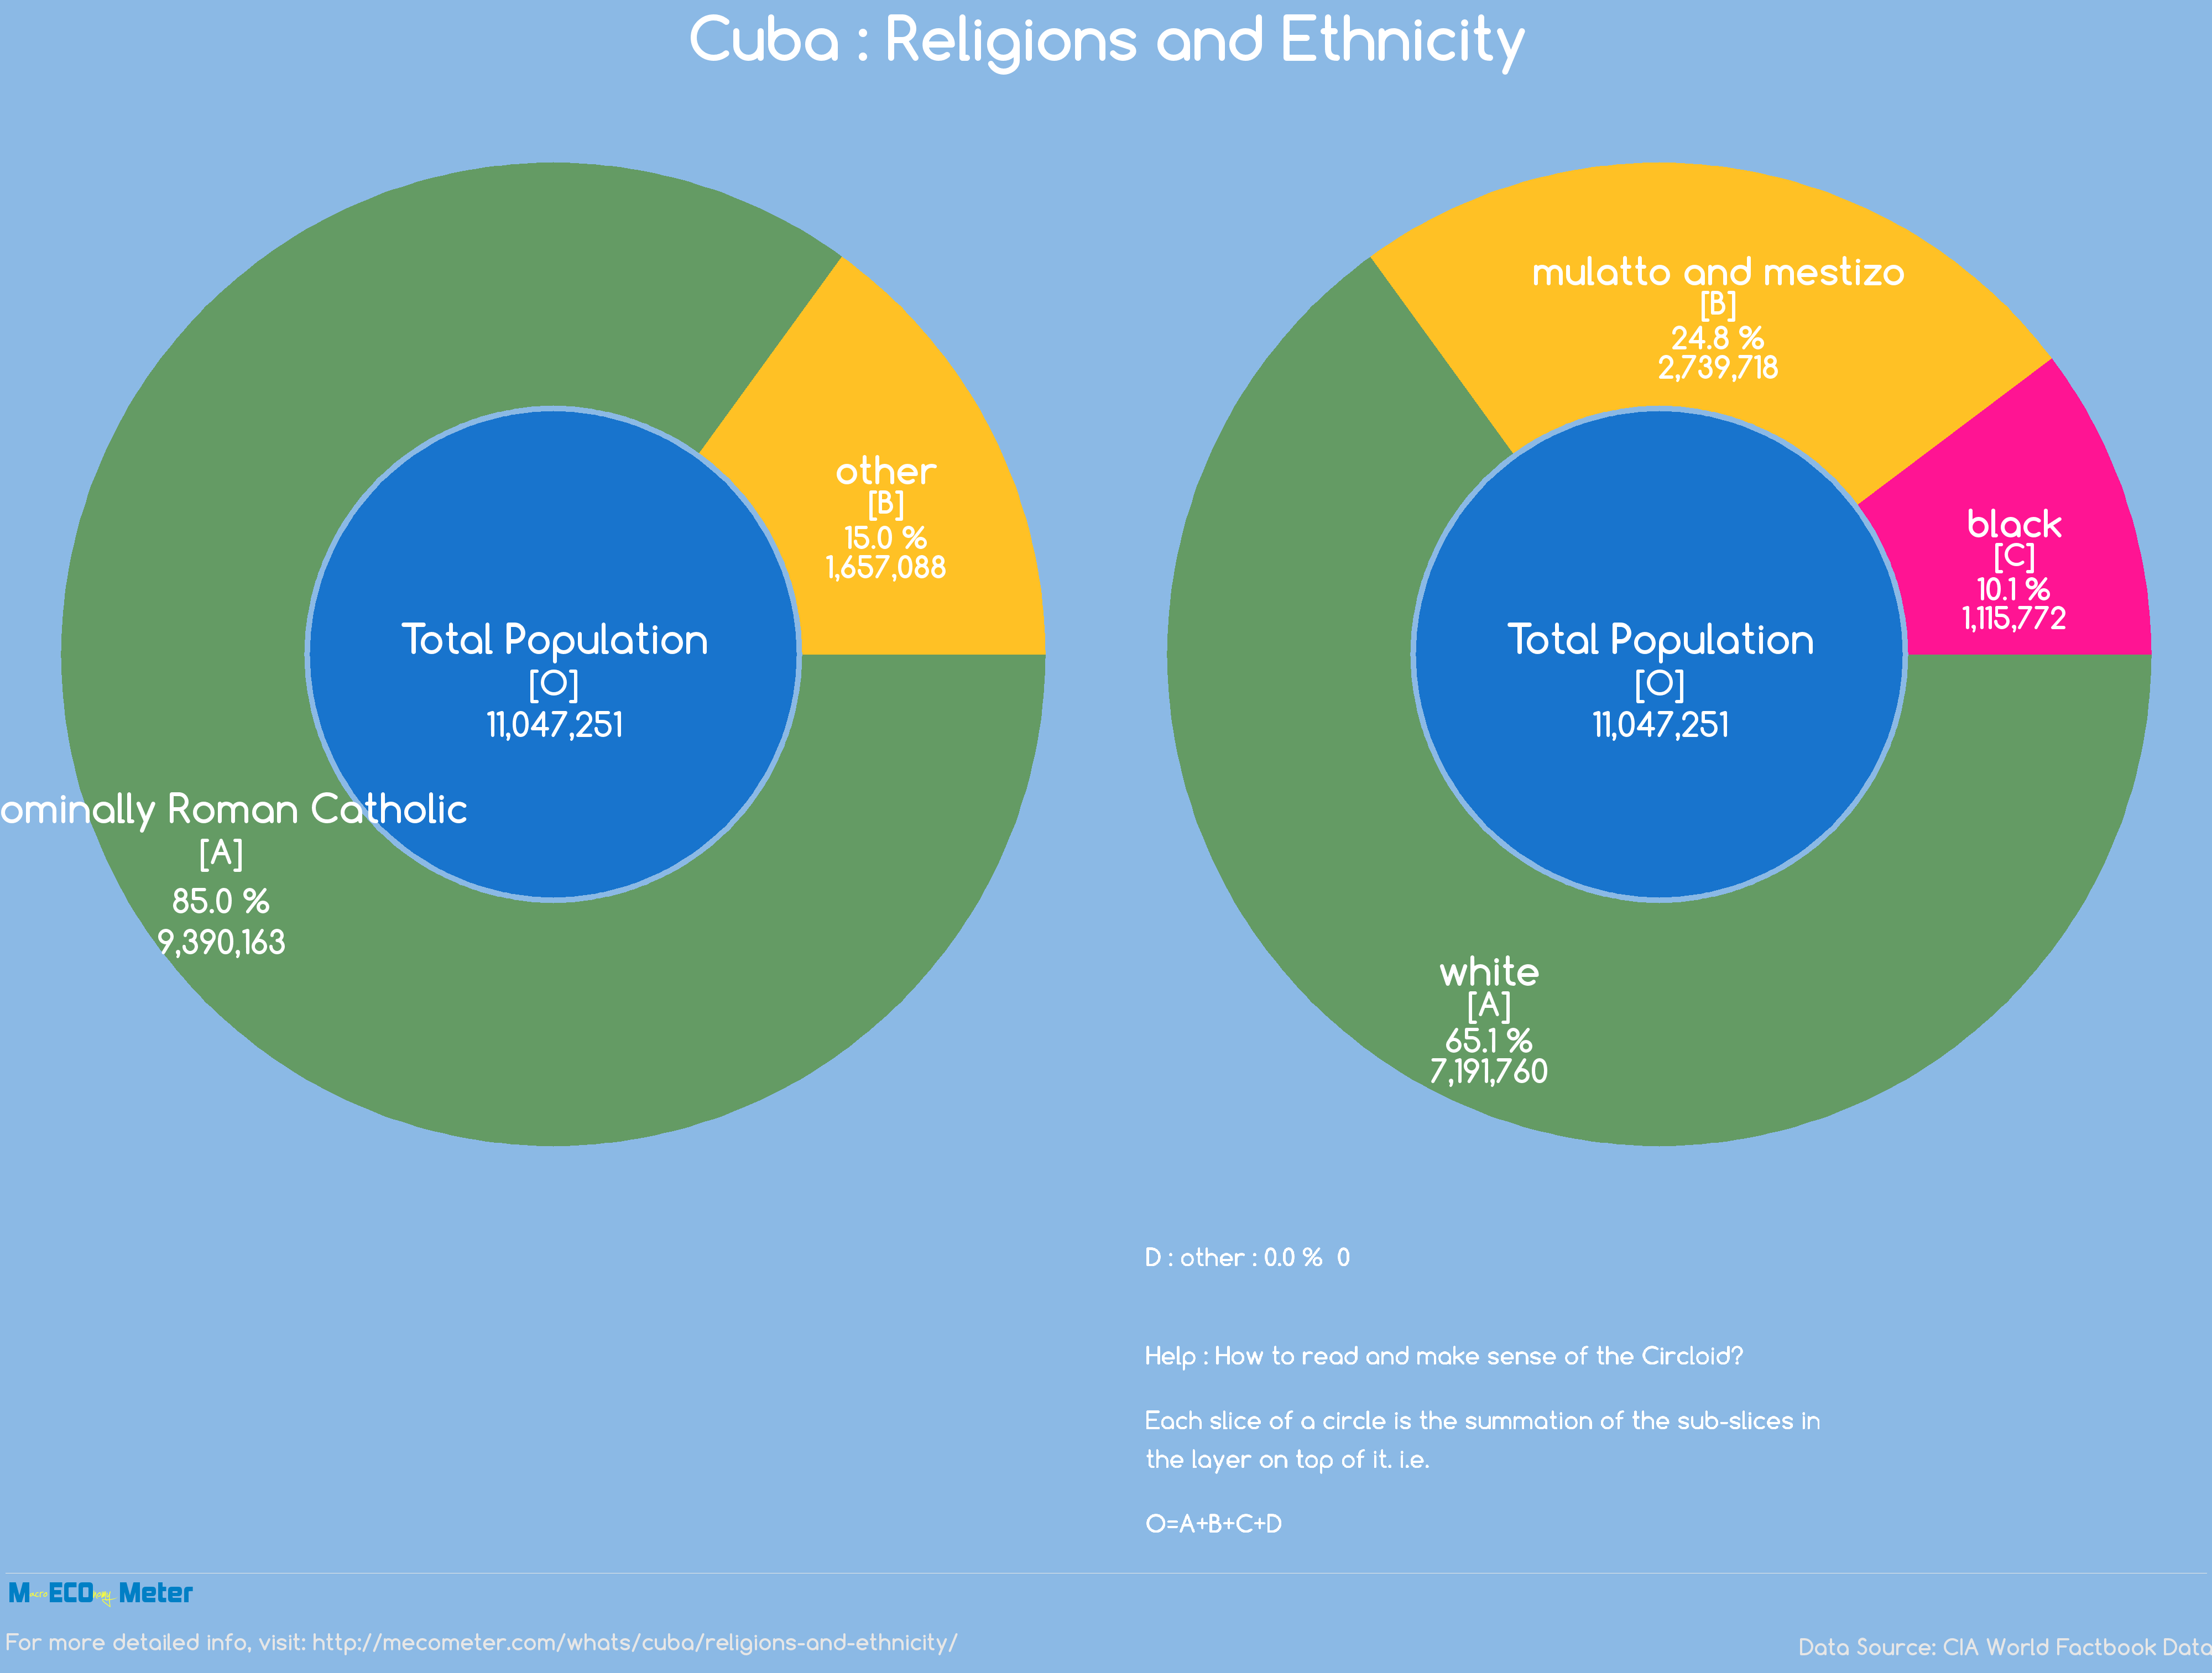 Cuba : Religions and Ethnicity